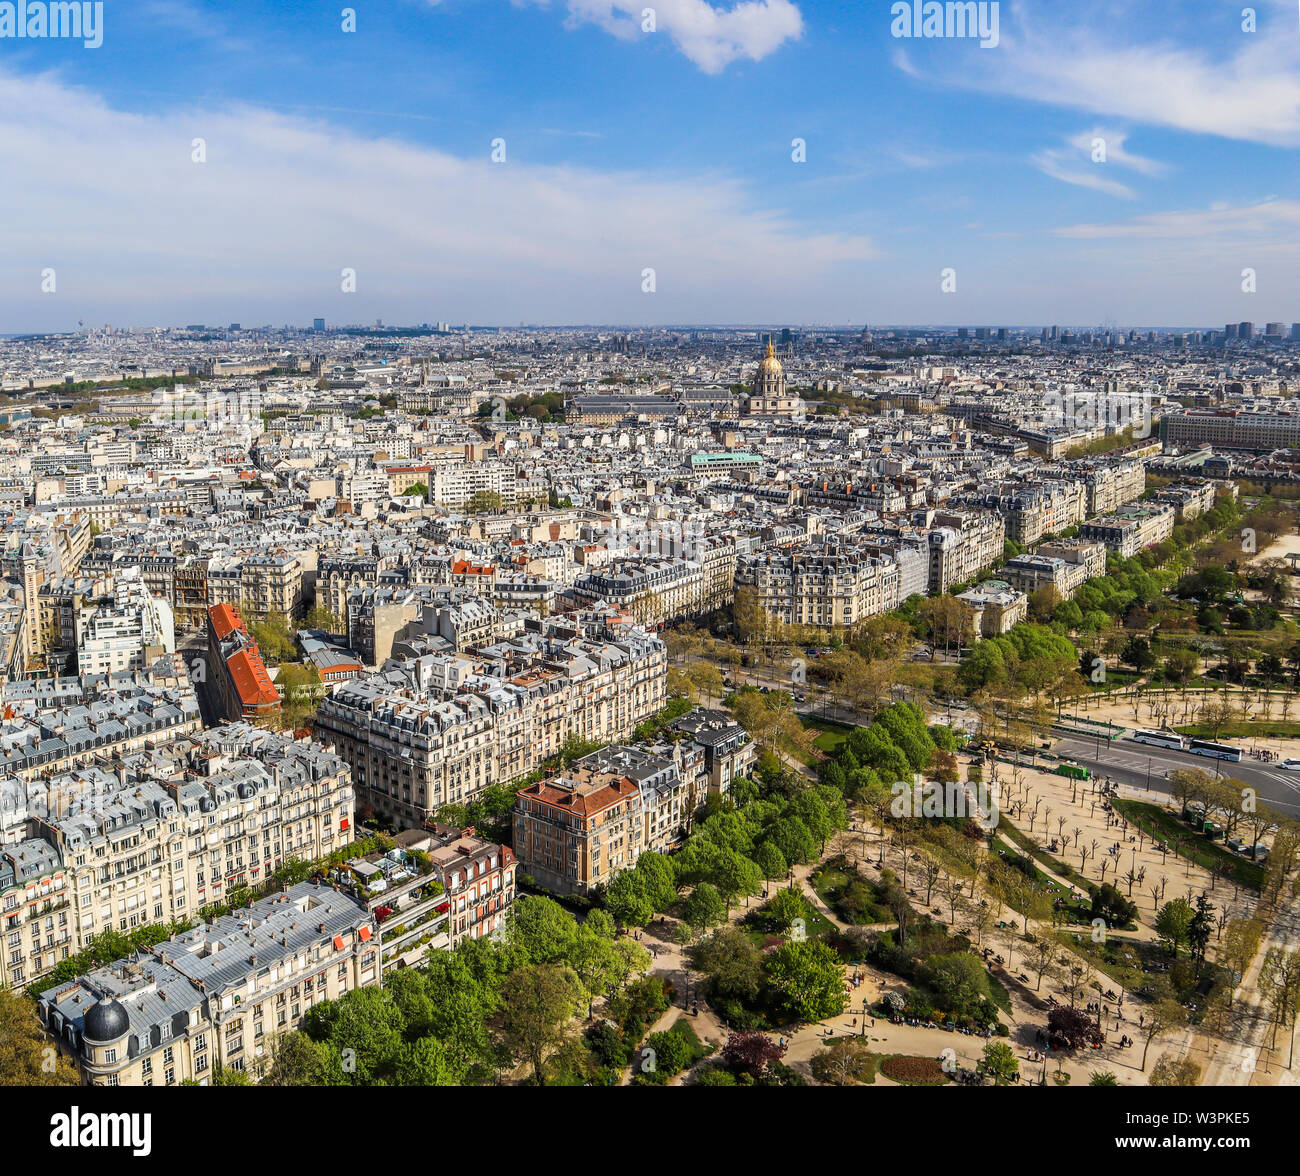 Aerial view of Paris city from Eiffel Tower. France. April 2019 - Stock Image